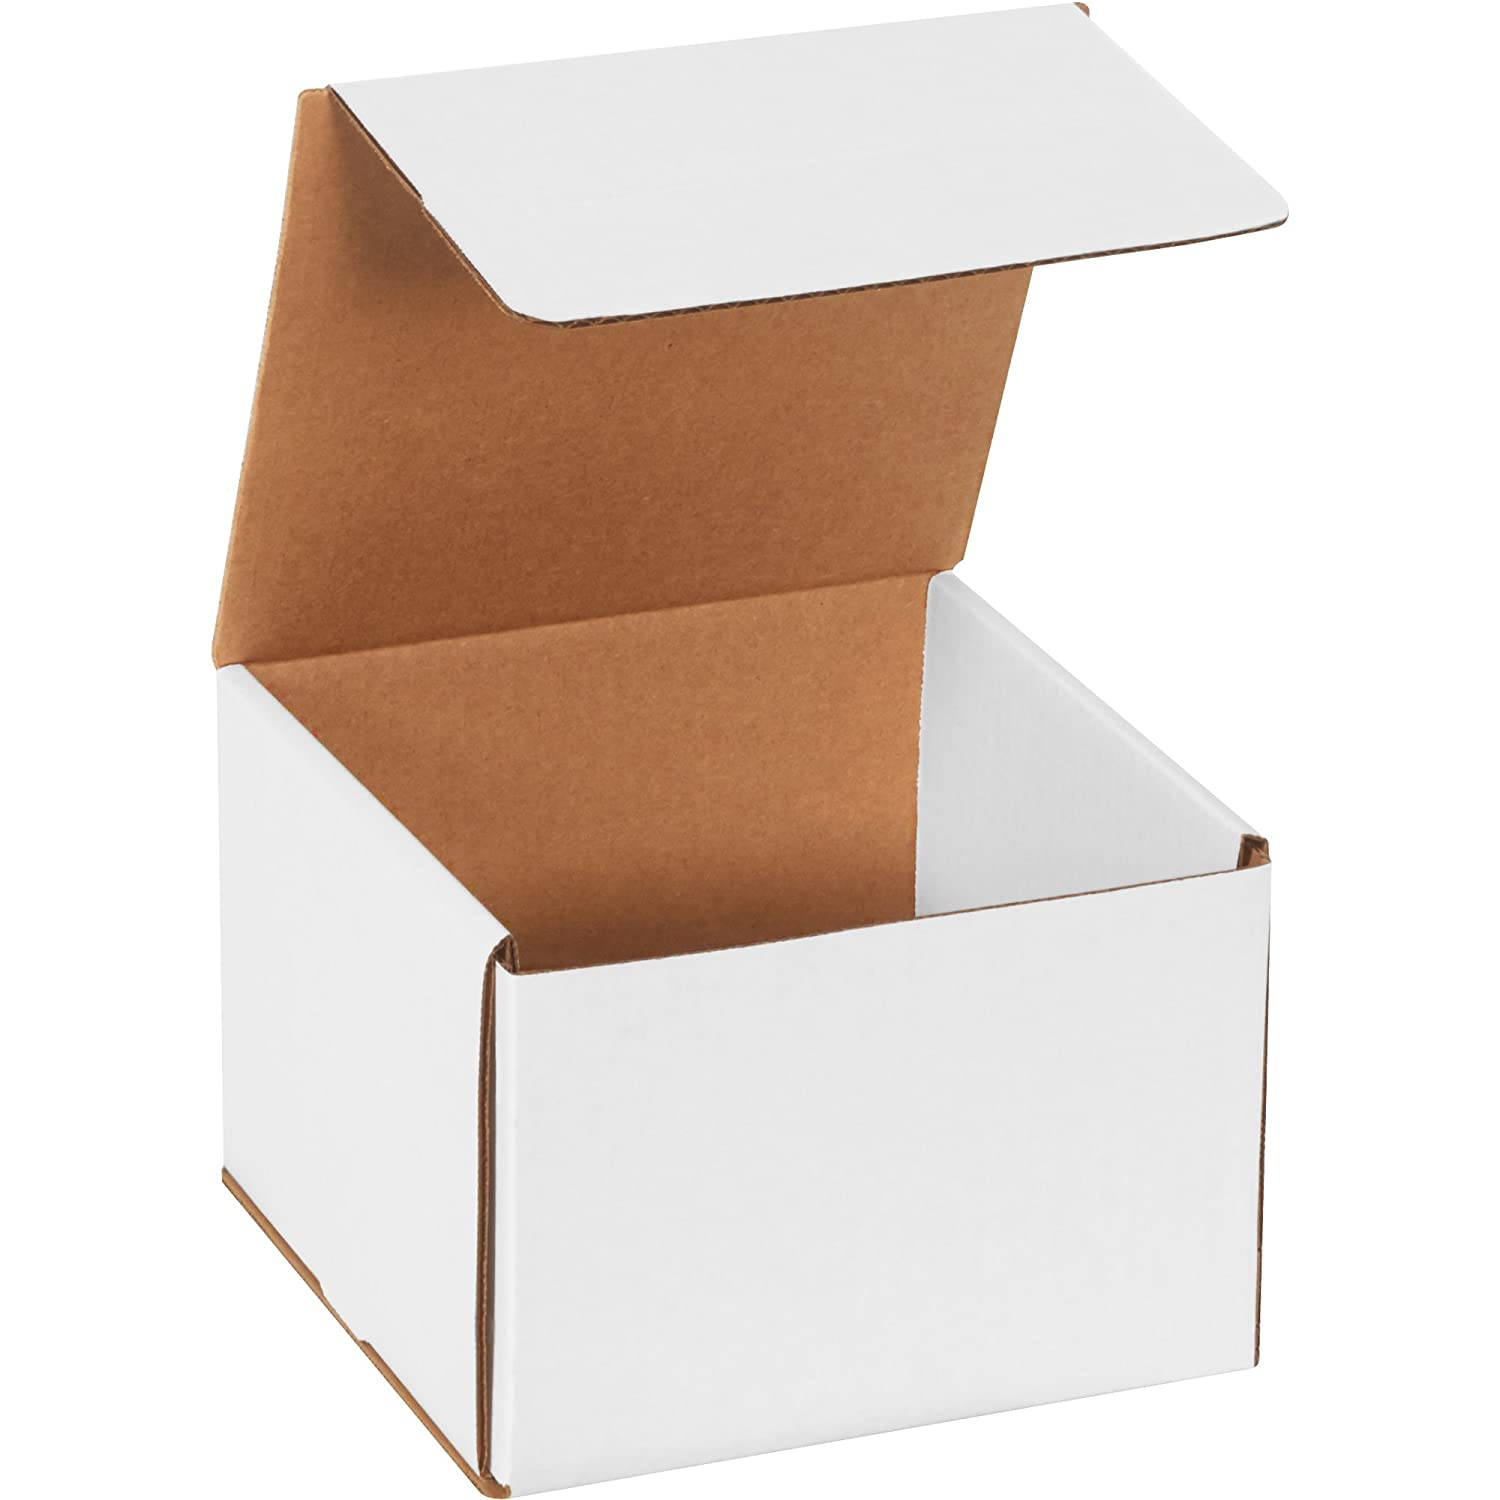 BOX OFFicial store 67% OFF of fixed price USA BM775 7